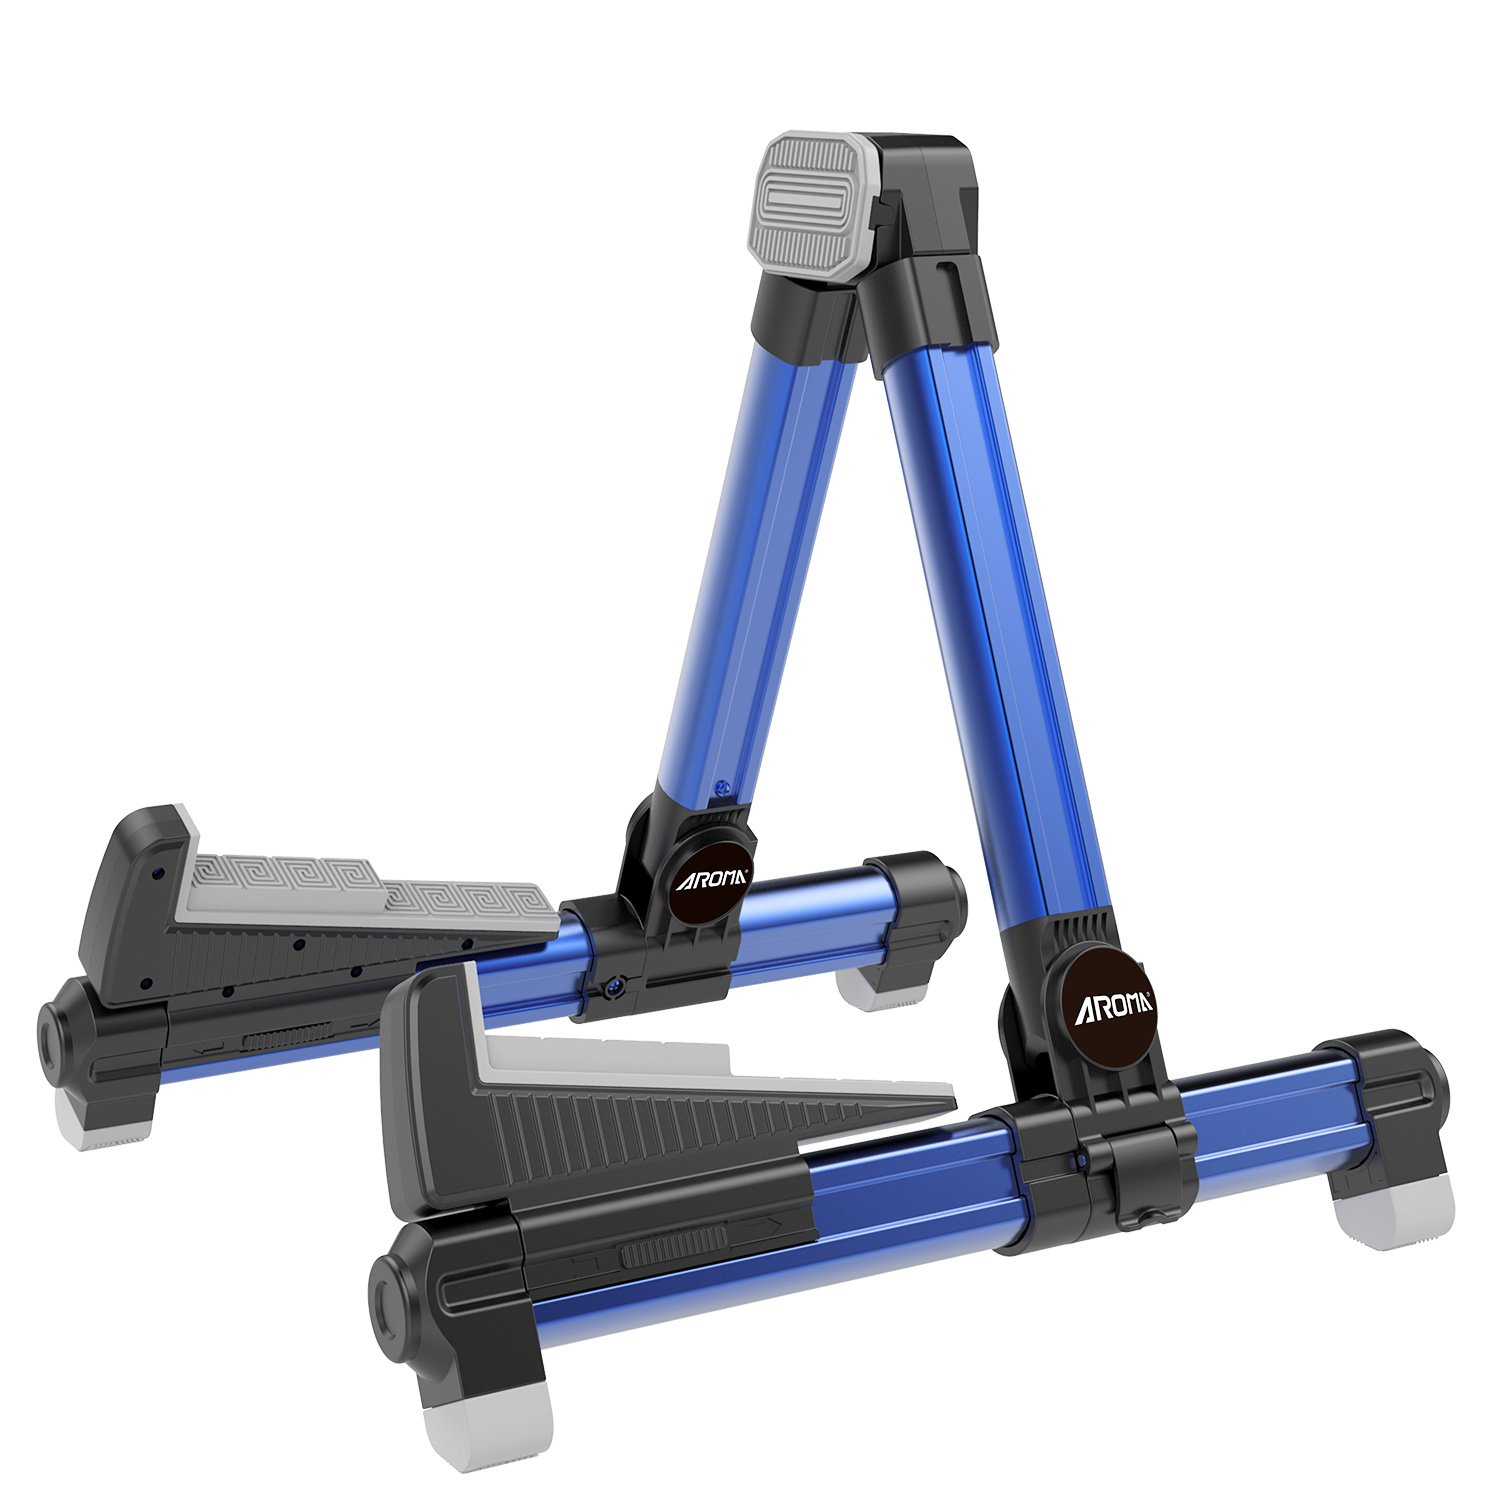 Aroma Aluminum Floor Guitar Stand Blue AGS8 Adjustable for All Types of Guitars, Basses, Ukuleles and Violins, Banjo Foldable to Easily Carry Steady Stand Safe Protection